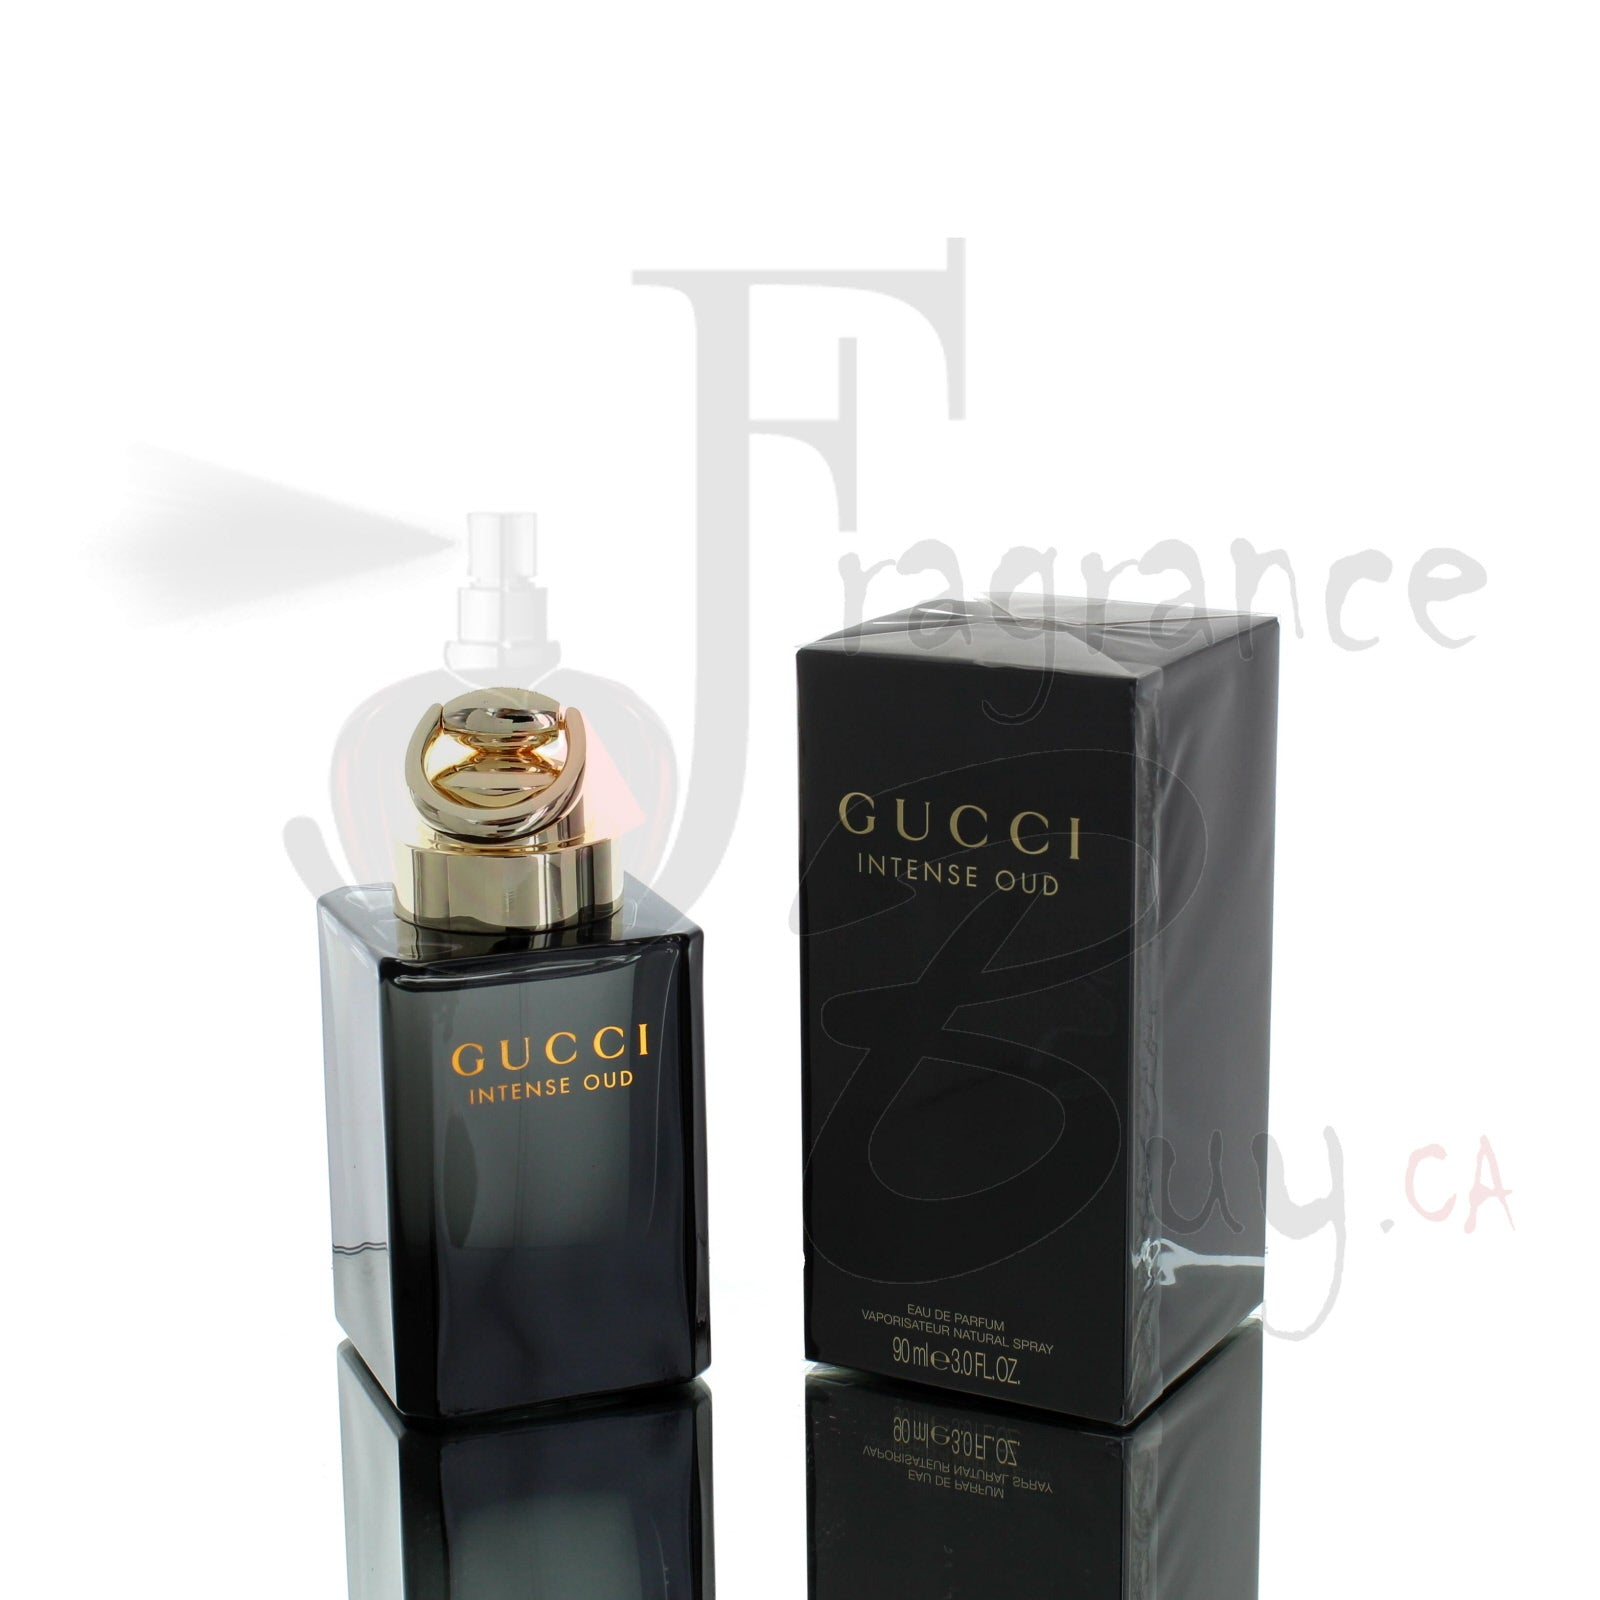 Gucci Intense Oud For Man/Woman